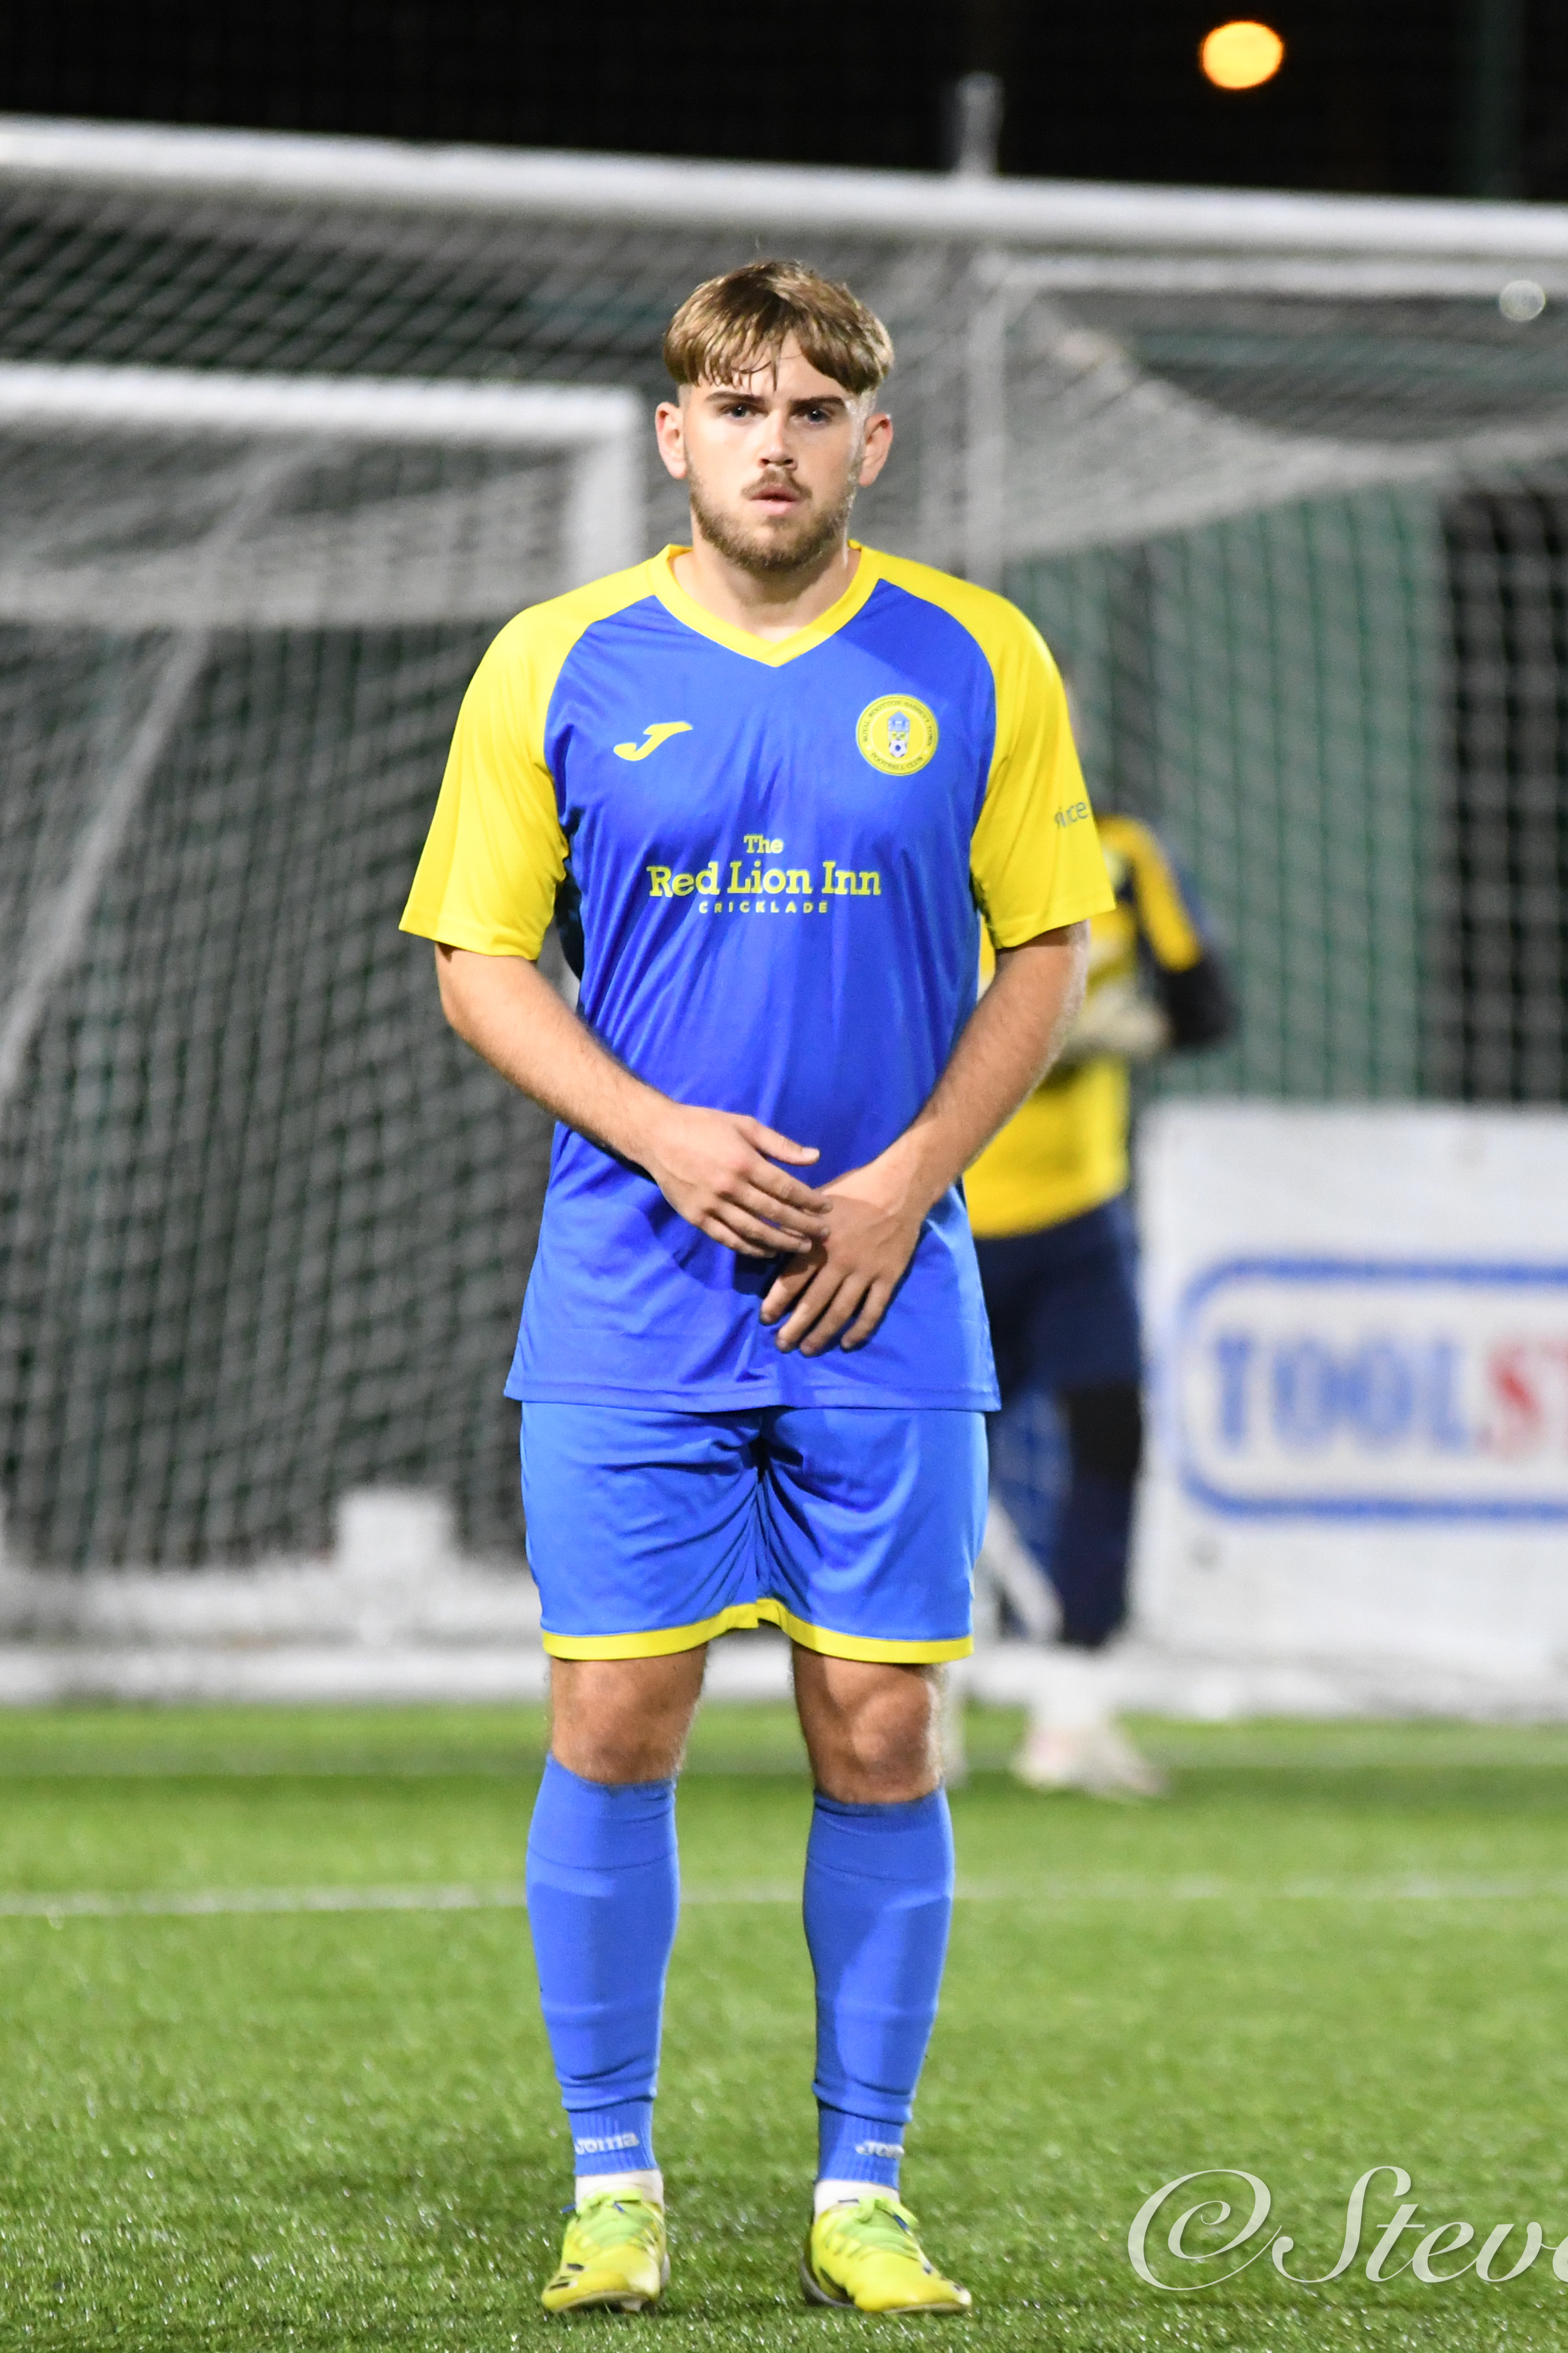 Photographs from Royal Wootton Bassett's 4-1 defeat against Roman Glass St George (Credit: Steve Green)